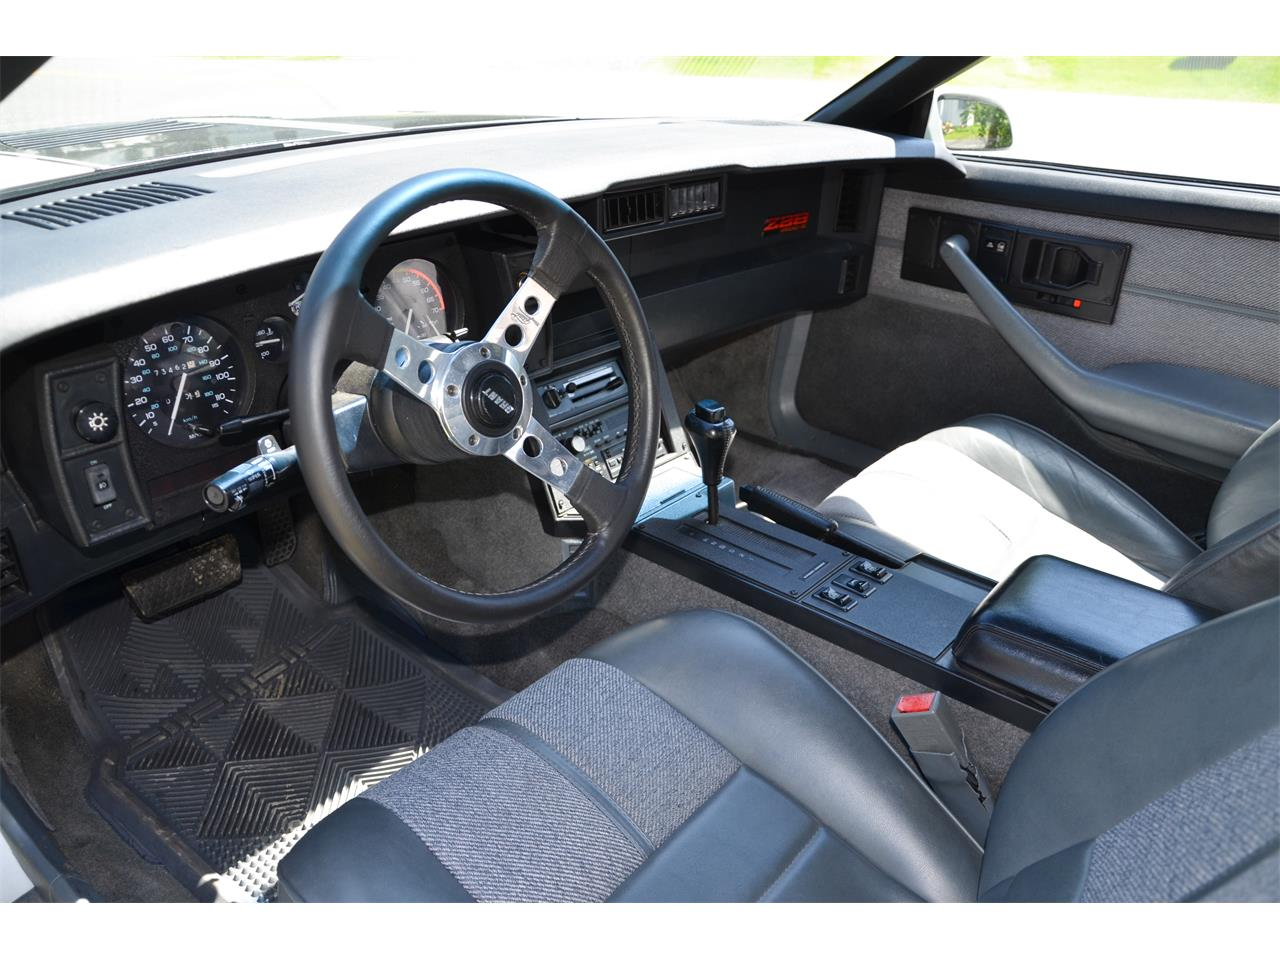 Large Picture of '89 Camaro IROC-Z - $14,000.00 - LBGQ